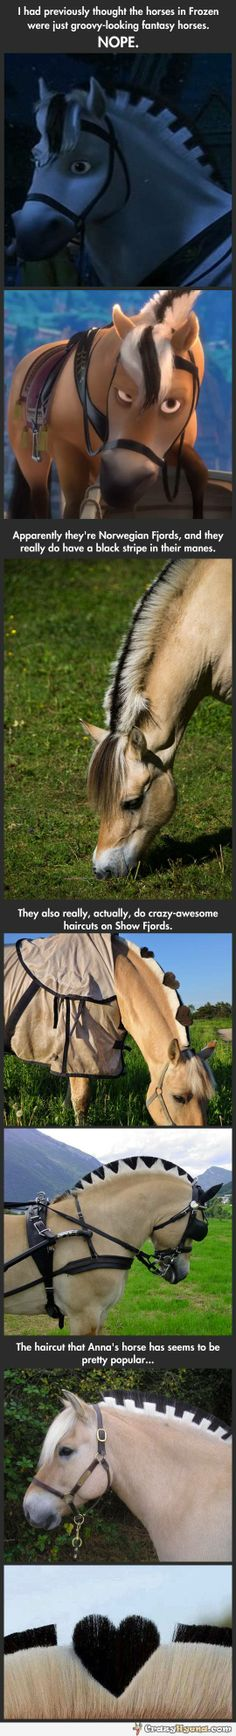 Horses with manes cuts like in Frozen